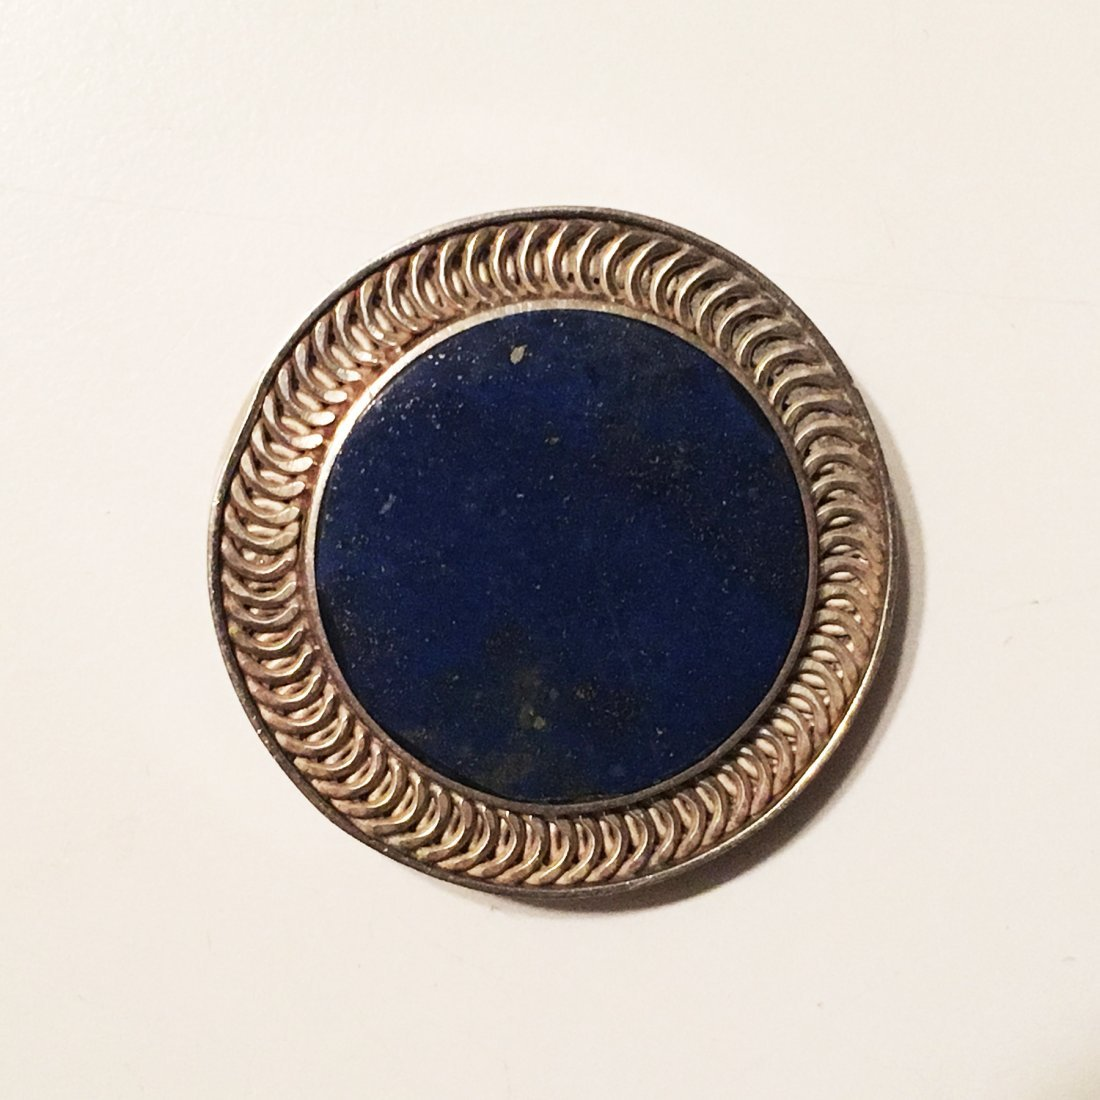 970 Sterling silver and lapis pin pendant